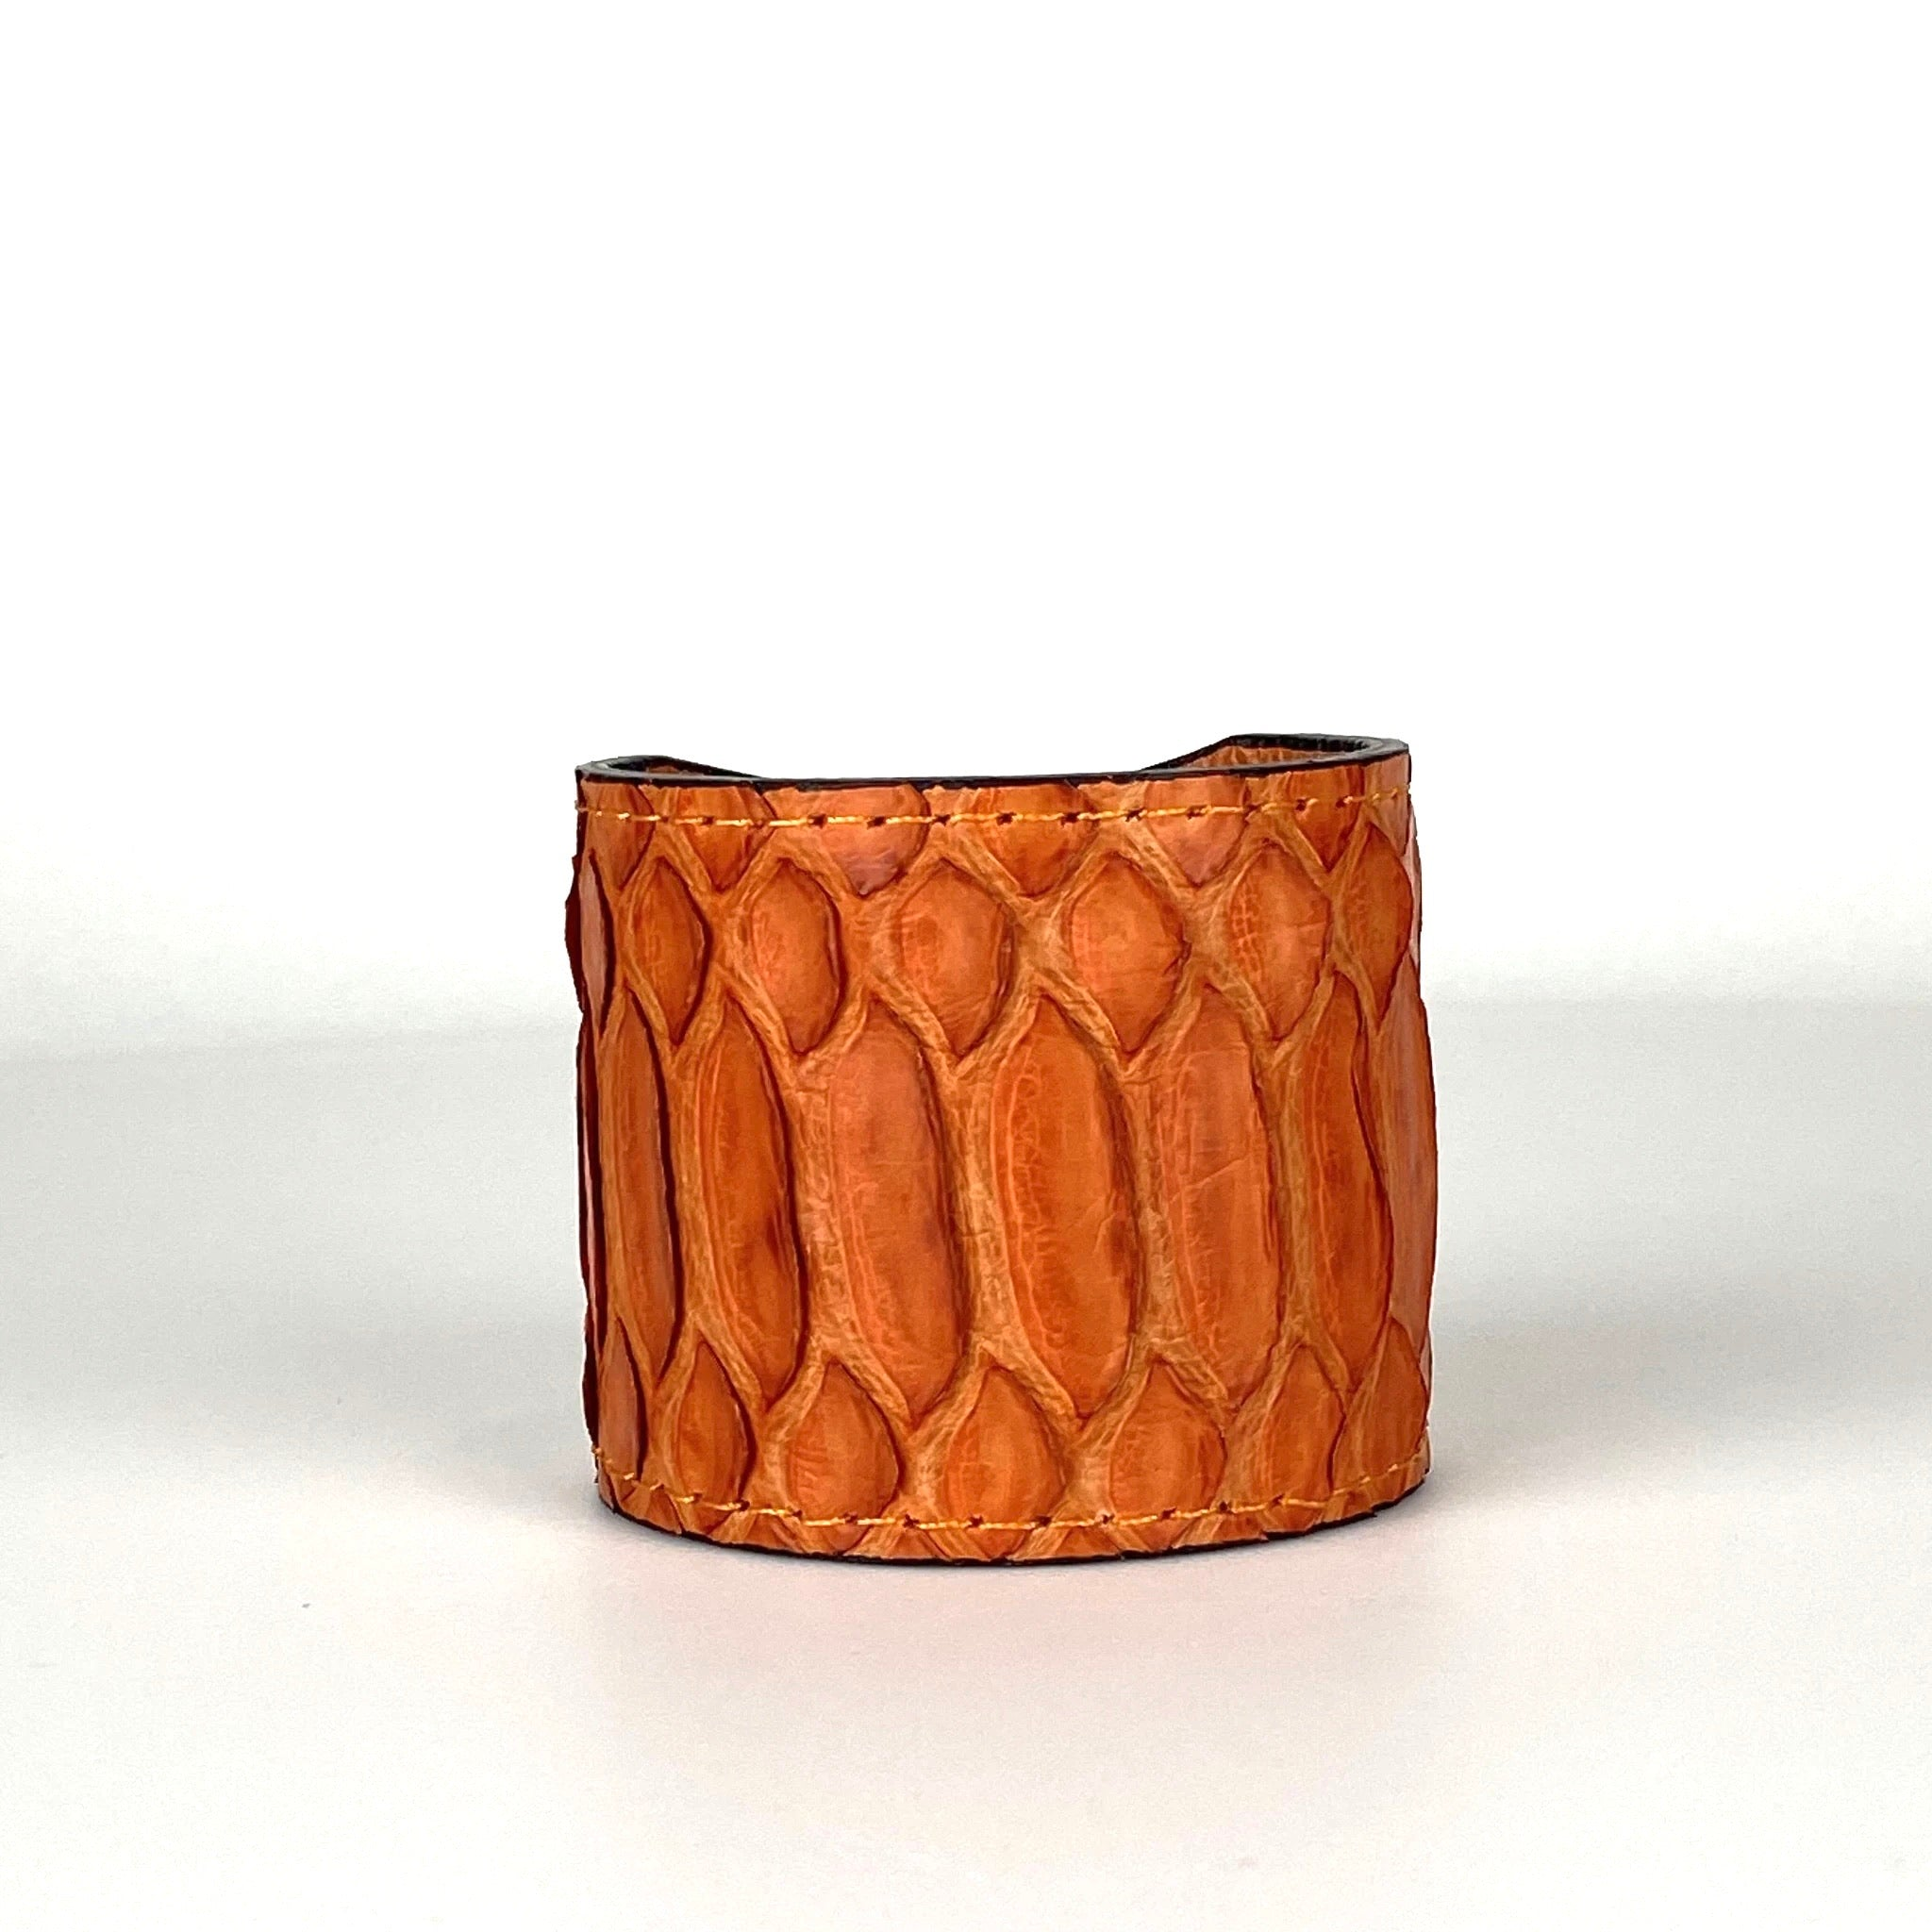 ORANGE SNAKESKIN CUFF S/M ADJUSTABLE